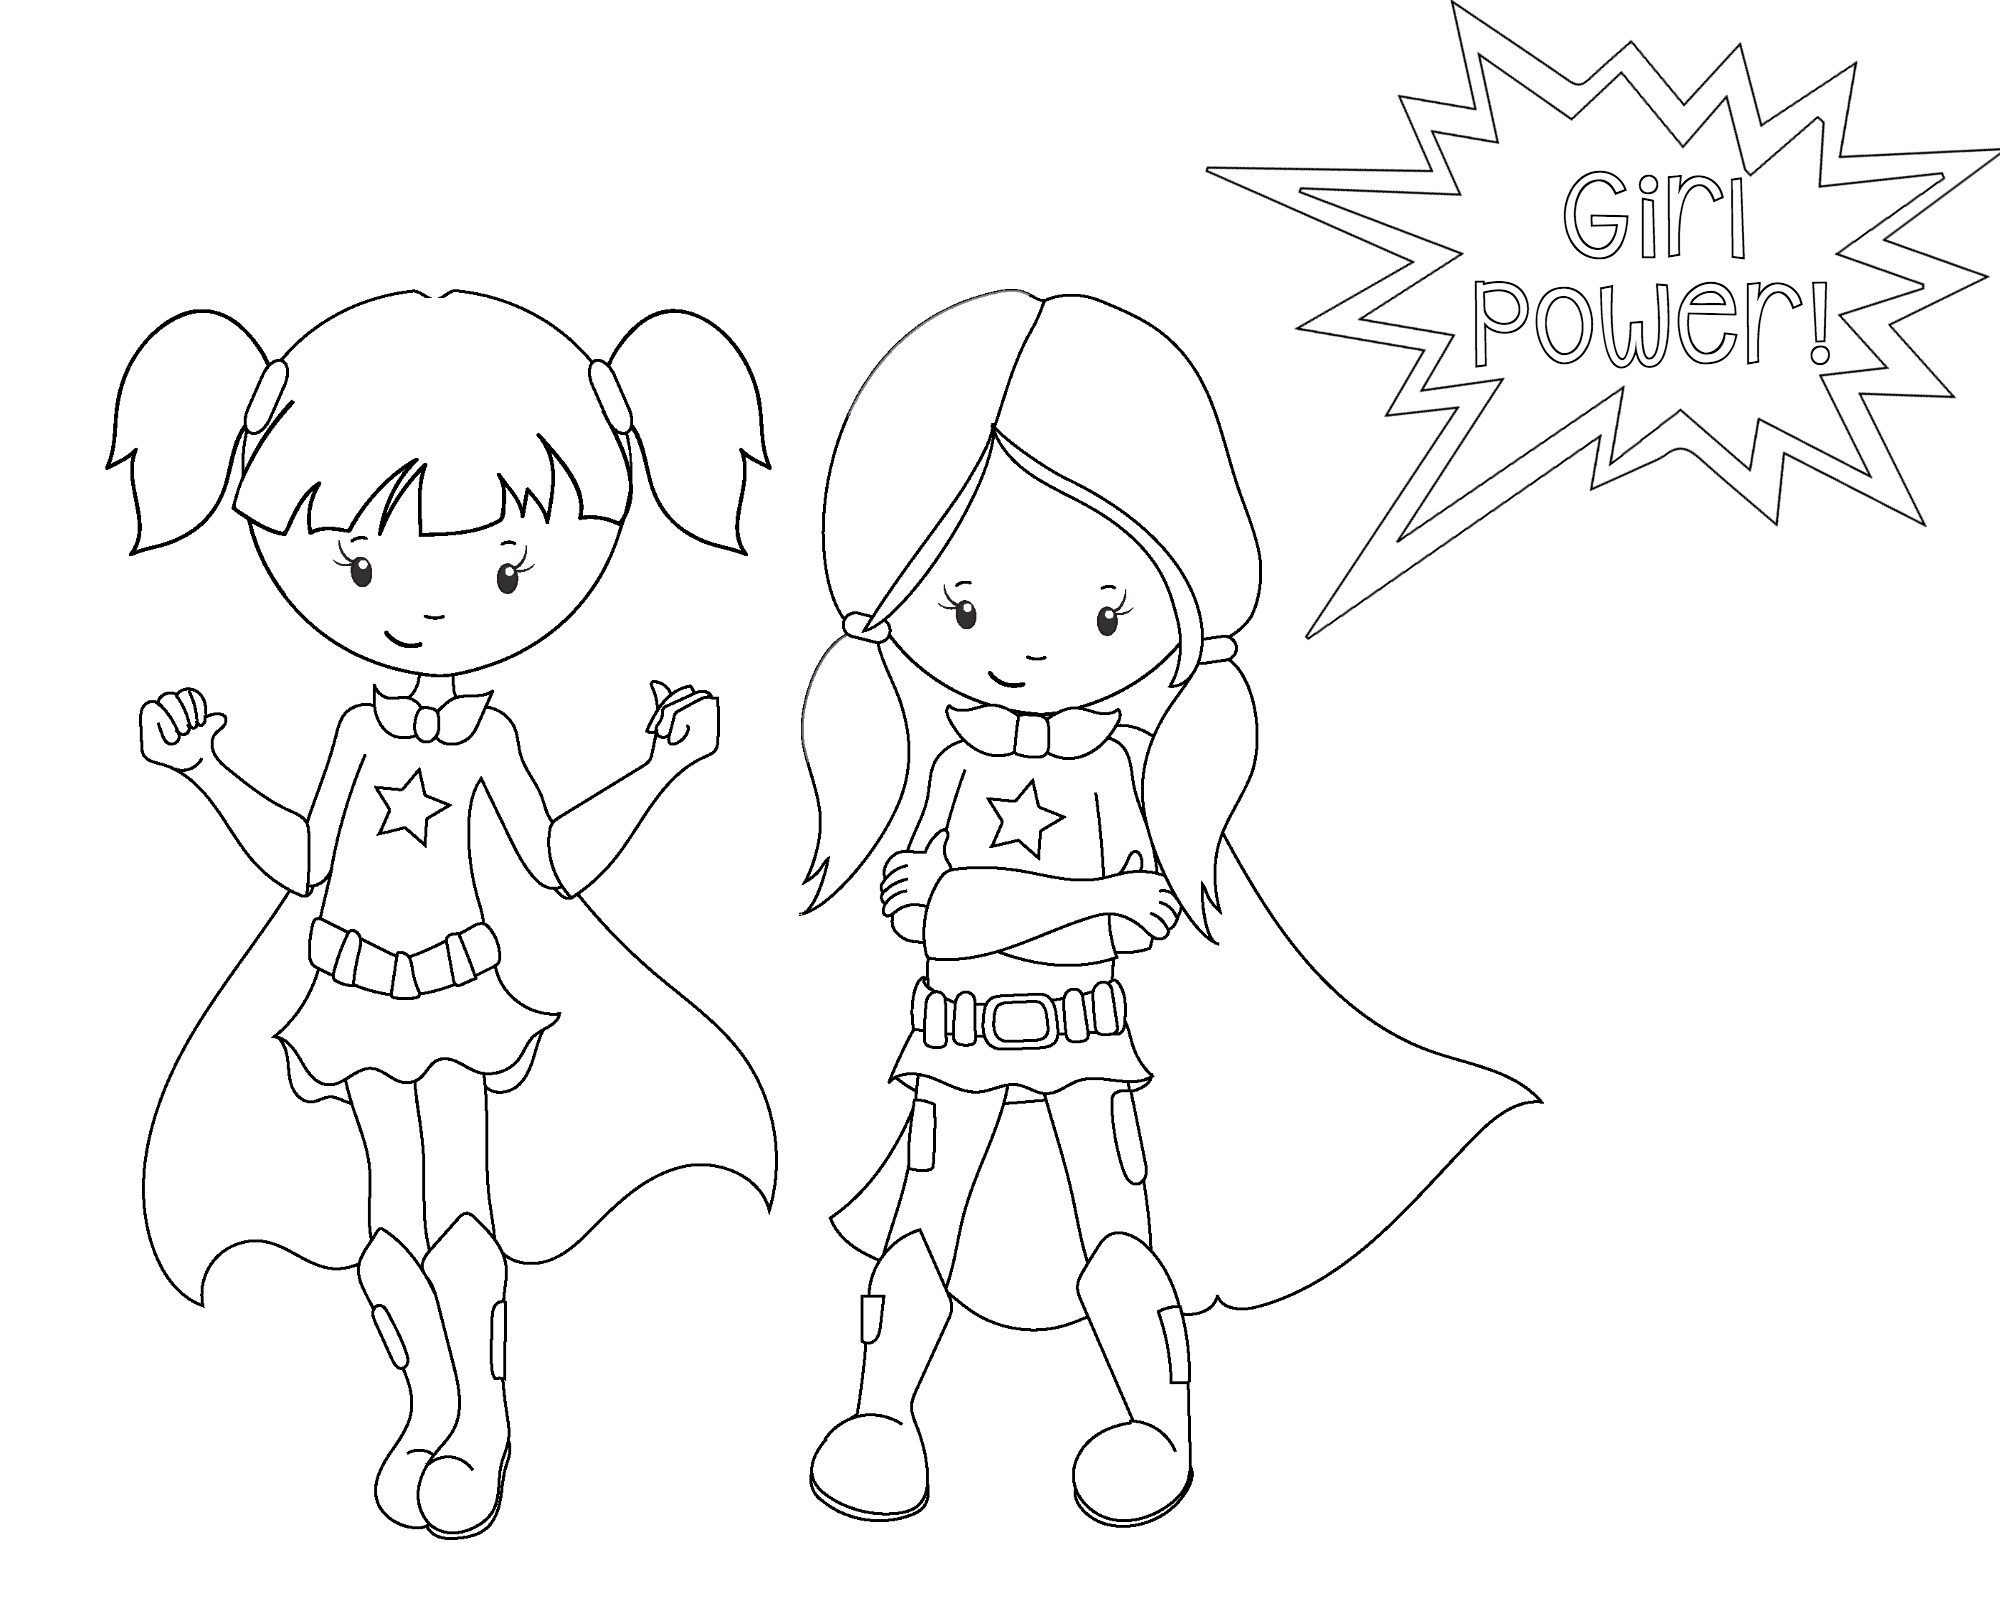 girl power superhero coloring page superhero3 - Superhero Coloring Books